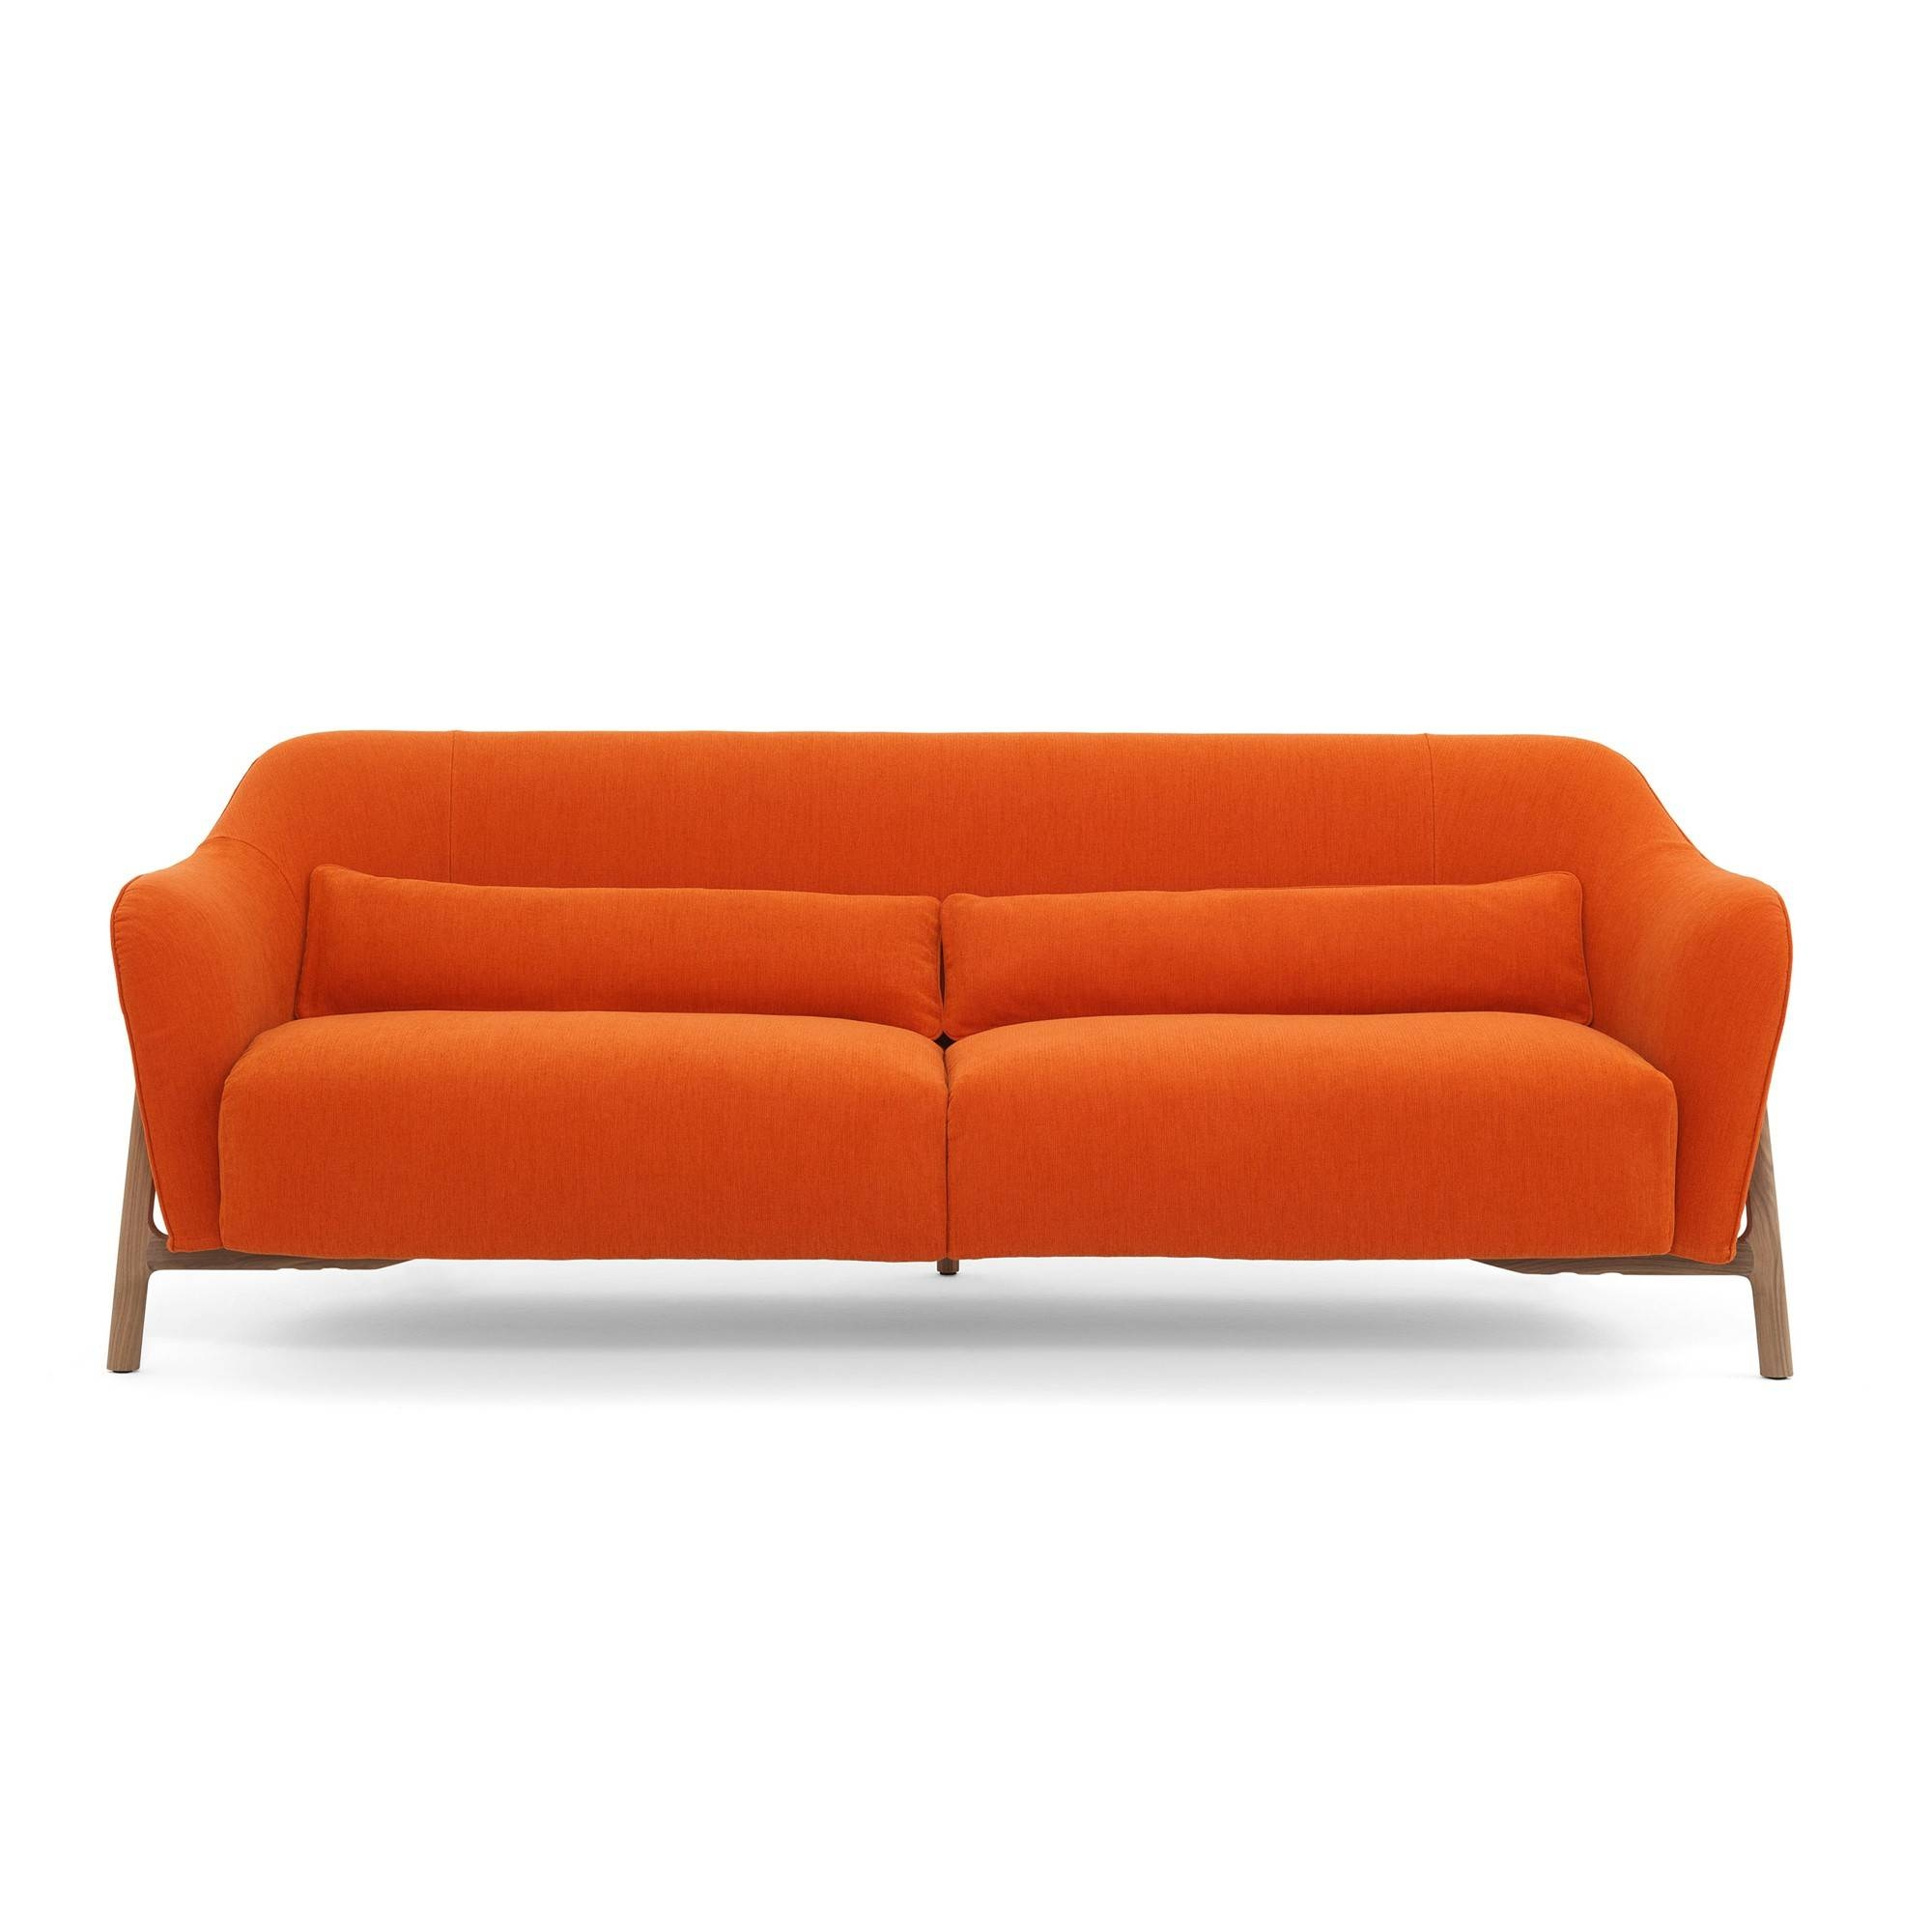 Adrian Red Sofa American Signature Furniturefactory Outlet in Orange Ikea Sofas (Image 4 of 30)